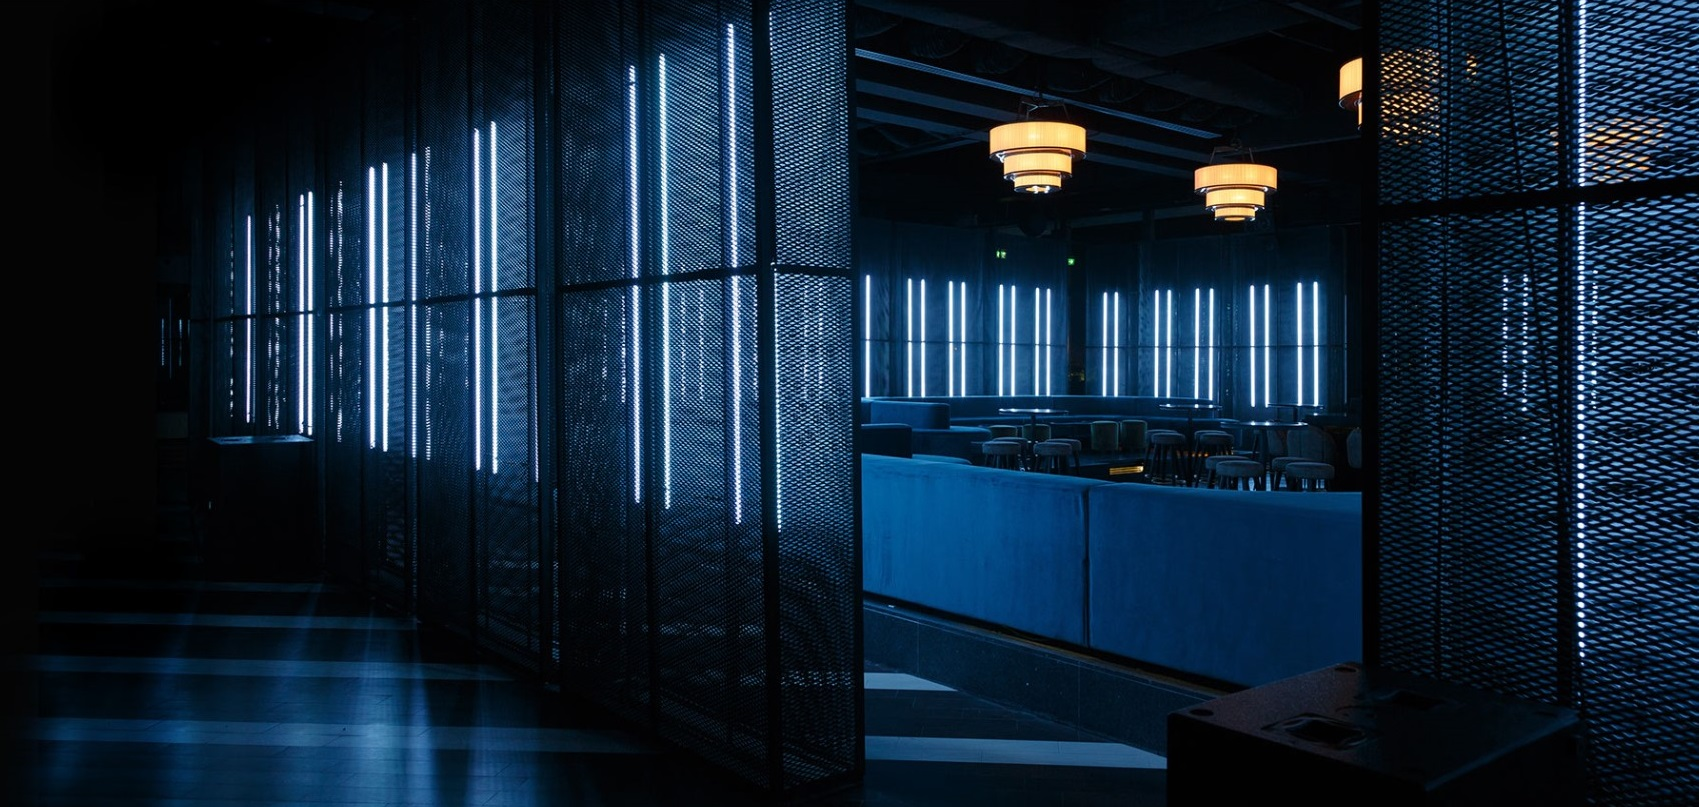 Shipping container architecture - two weeks night club